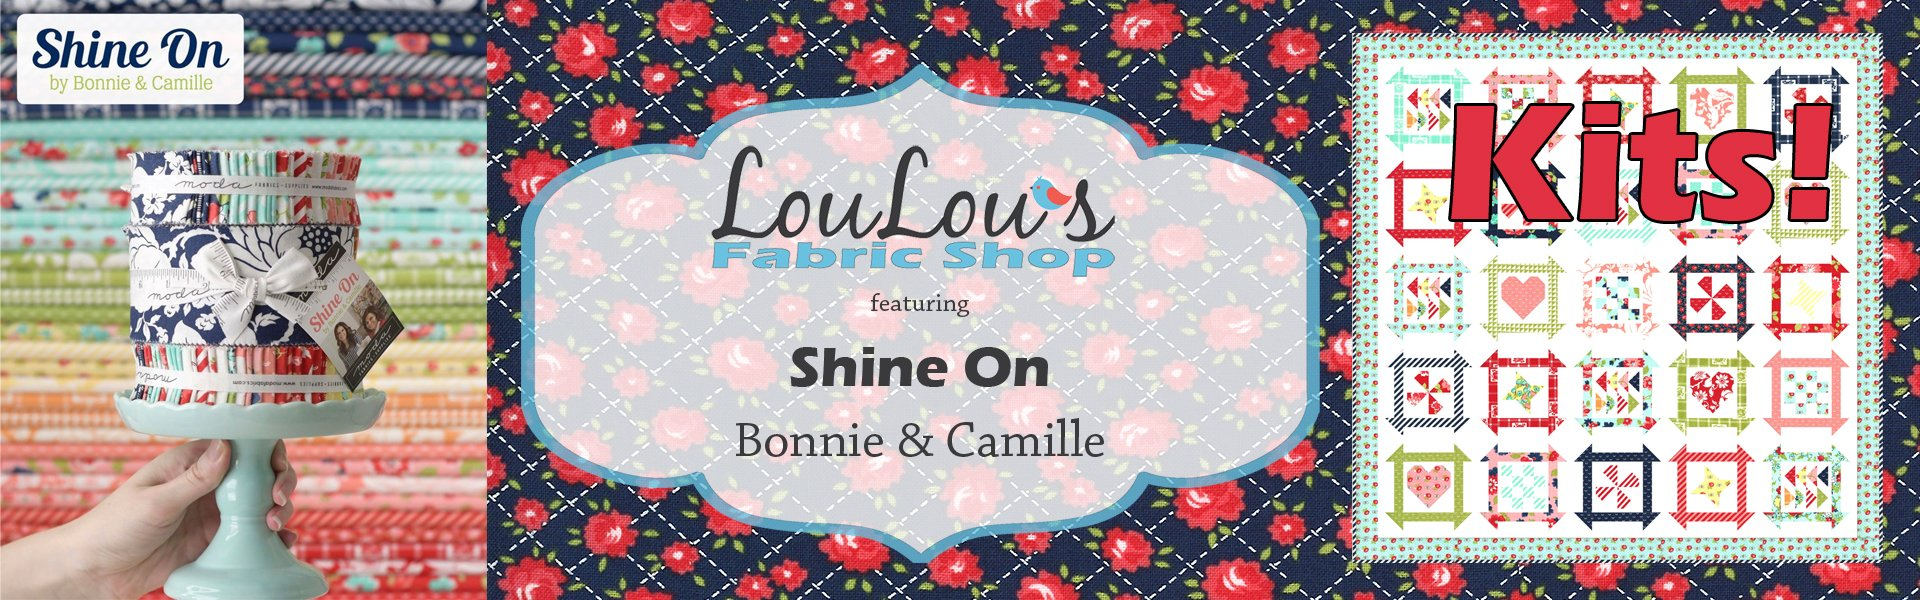 Shine On Fabric Collection by Bonnie & Camille for Moda Fabrics